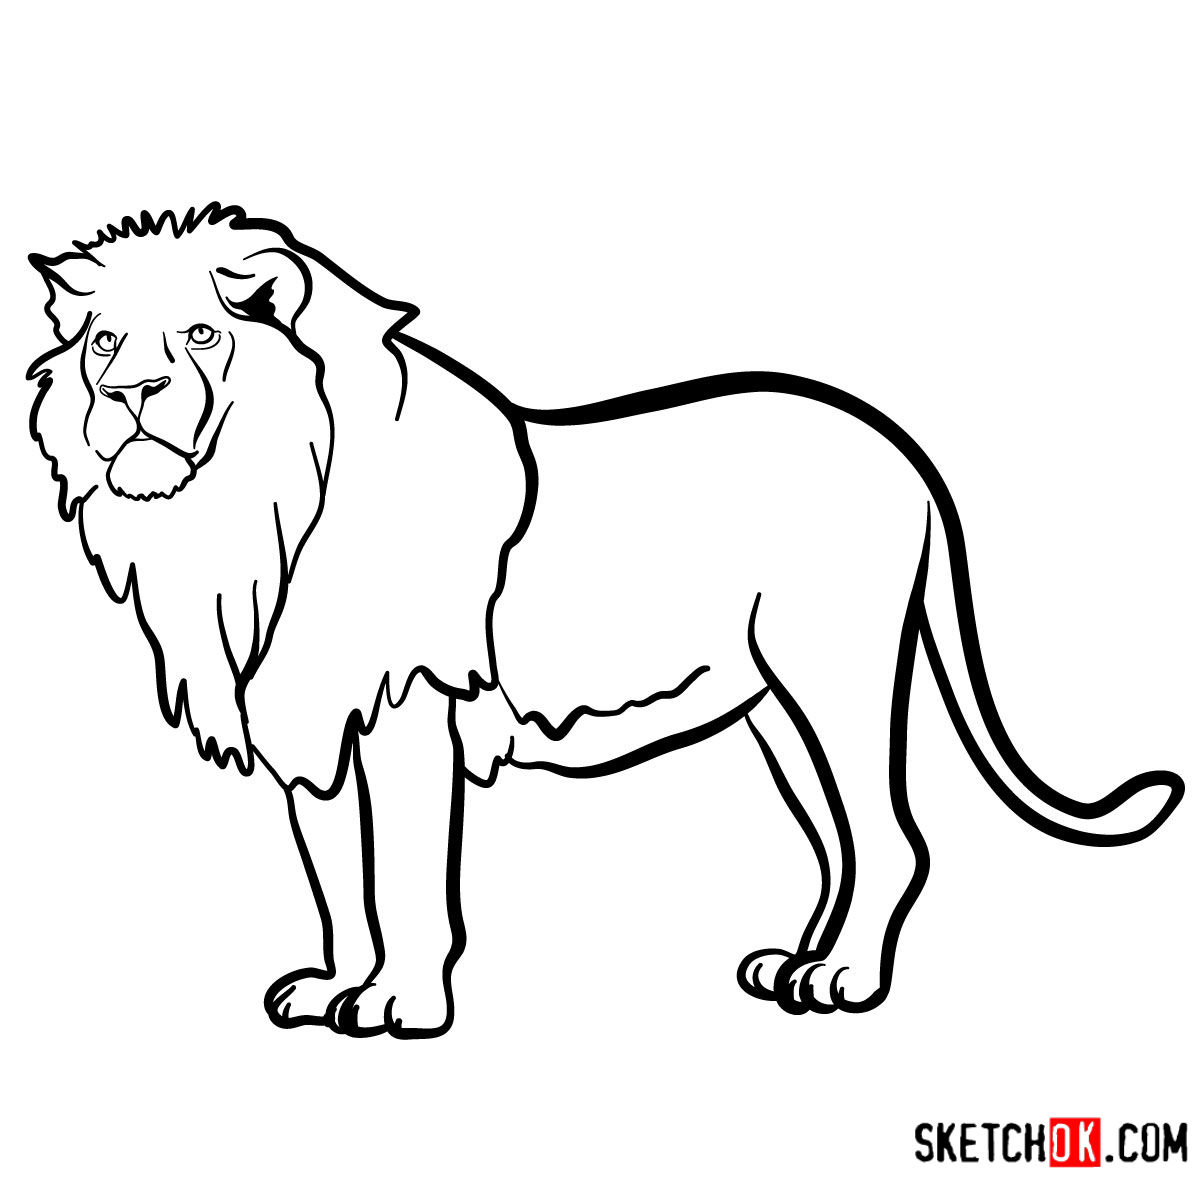 Lion Archives Sketchok Step By Step Drawing Tutorials